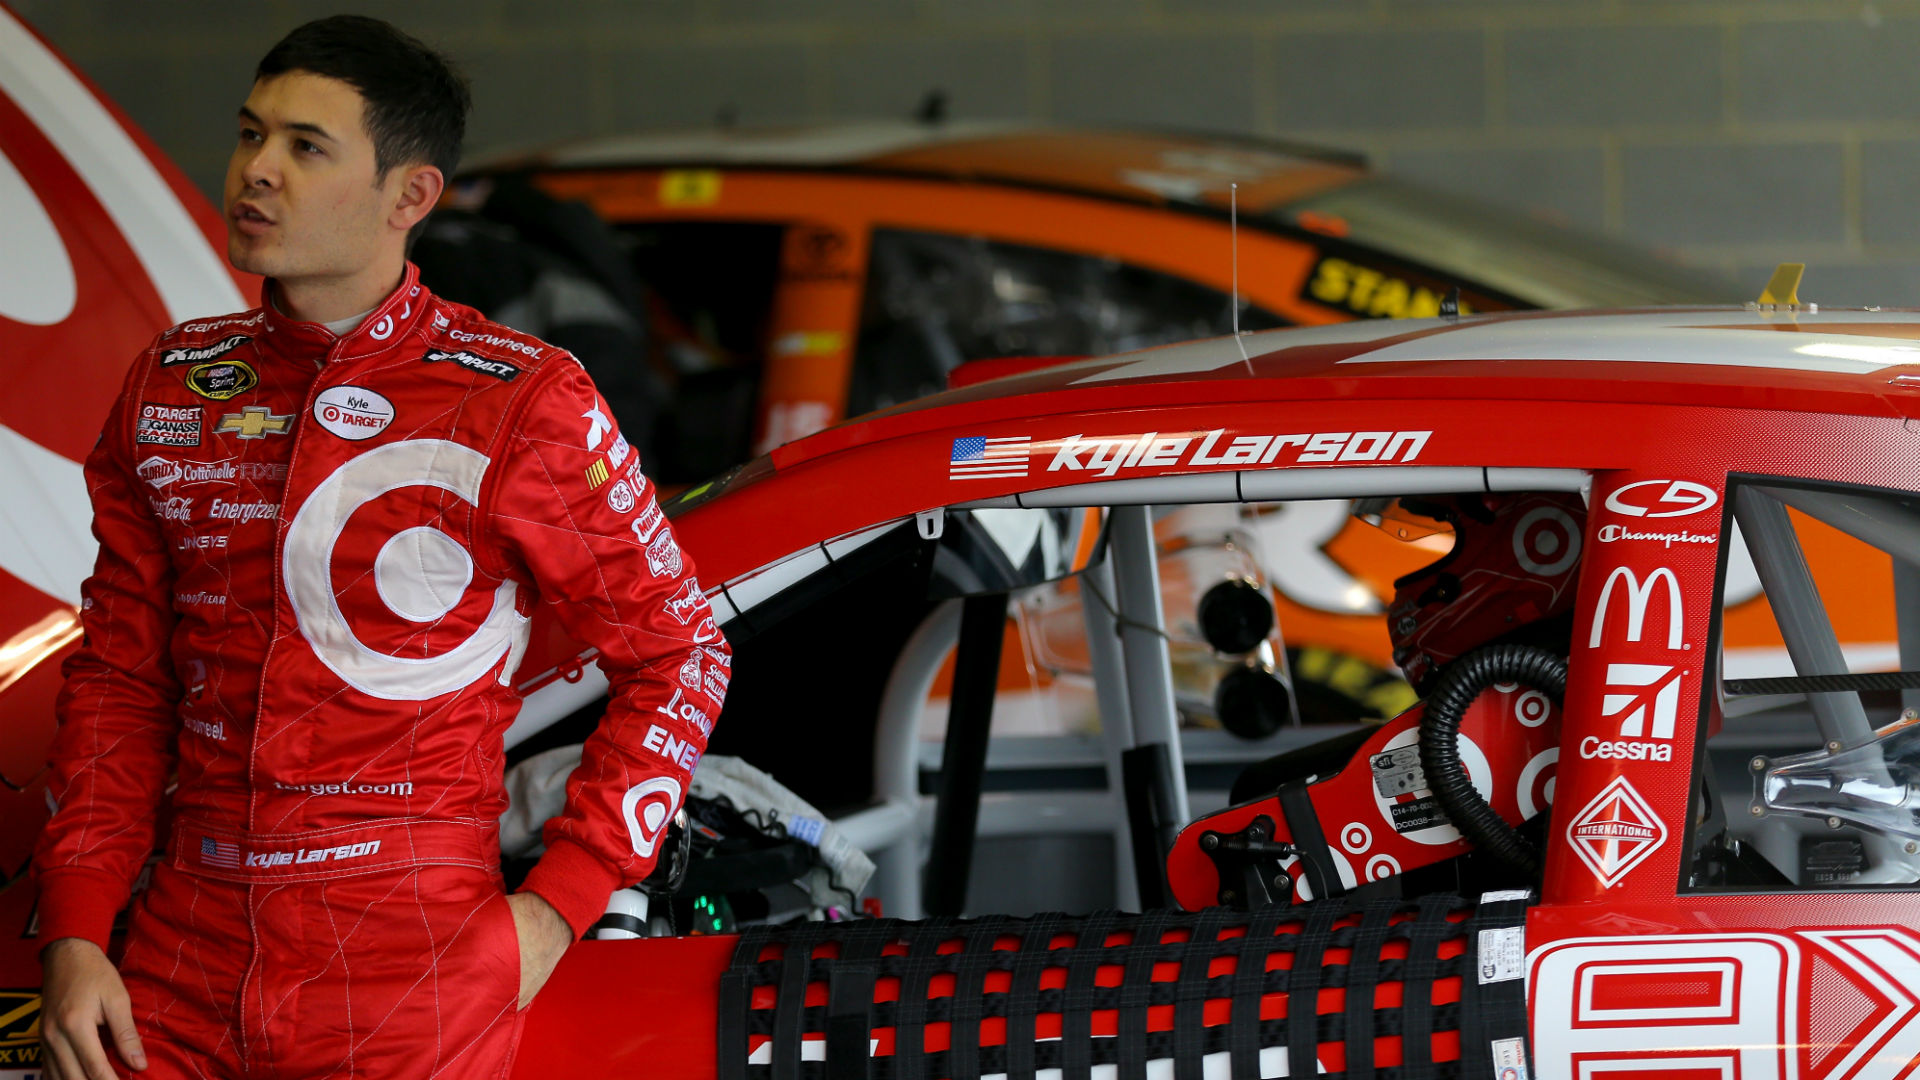 Kyle Larson Cleared To Return Next Weekend At Texas